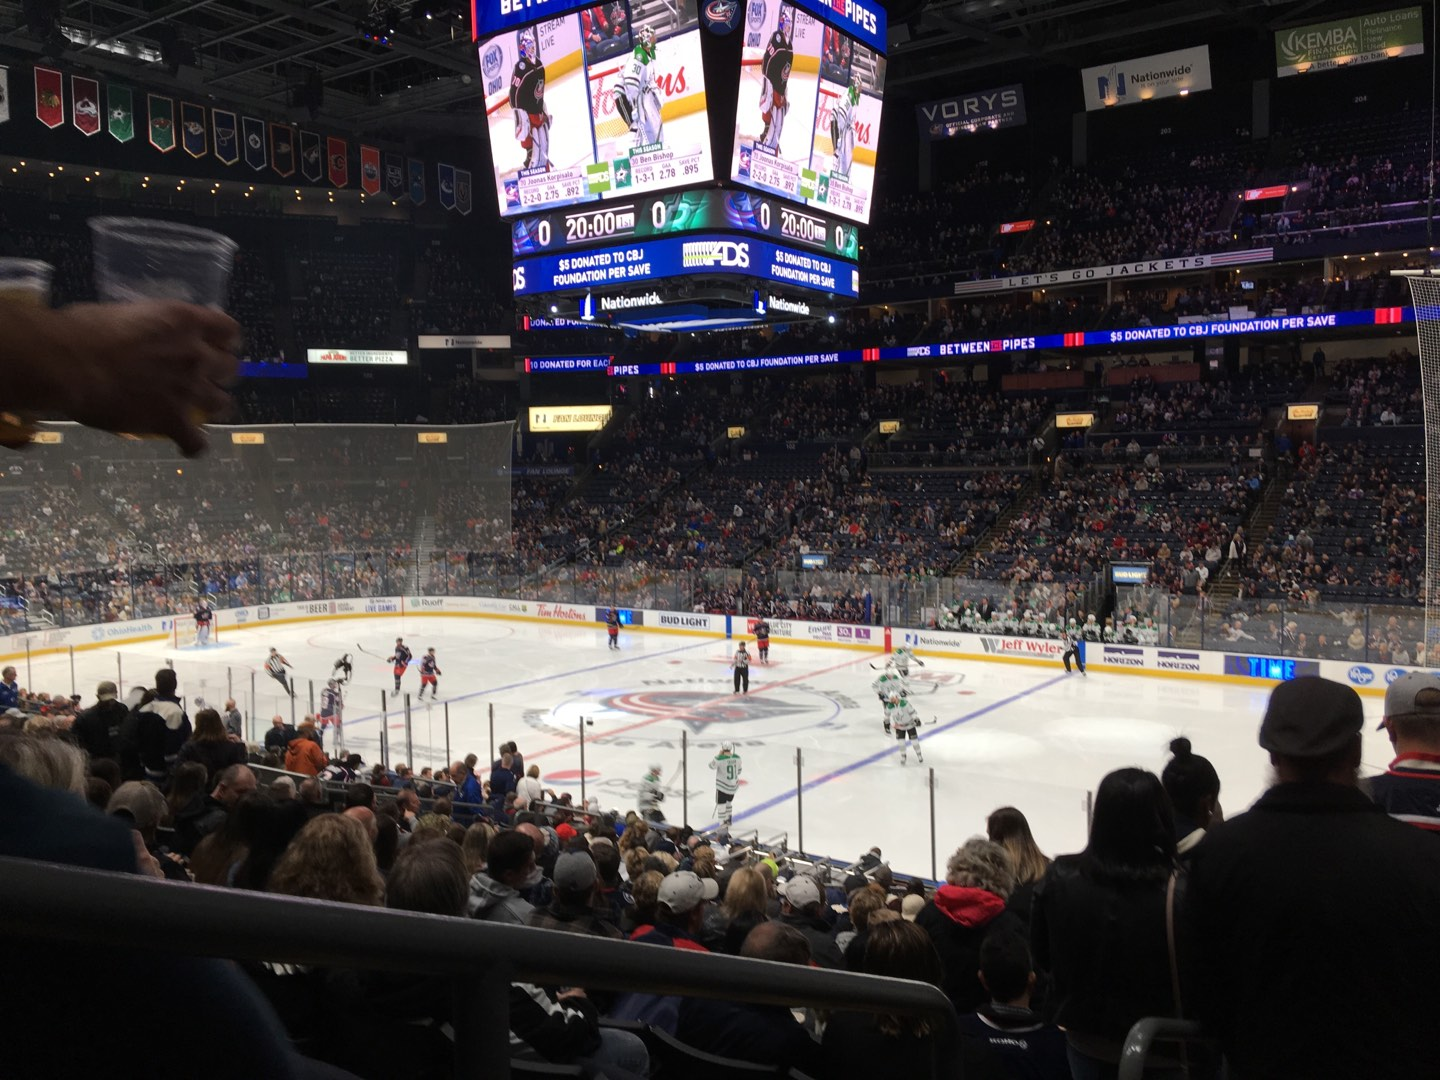 Nationwide Arena Section 112 Row W Seat 26